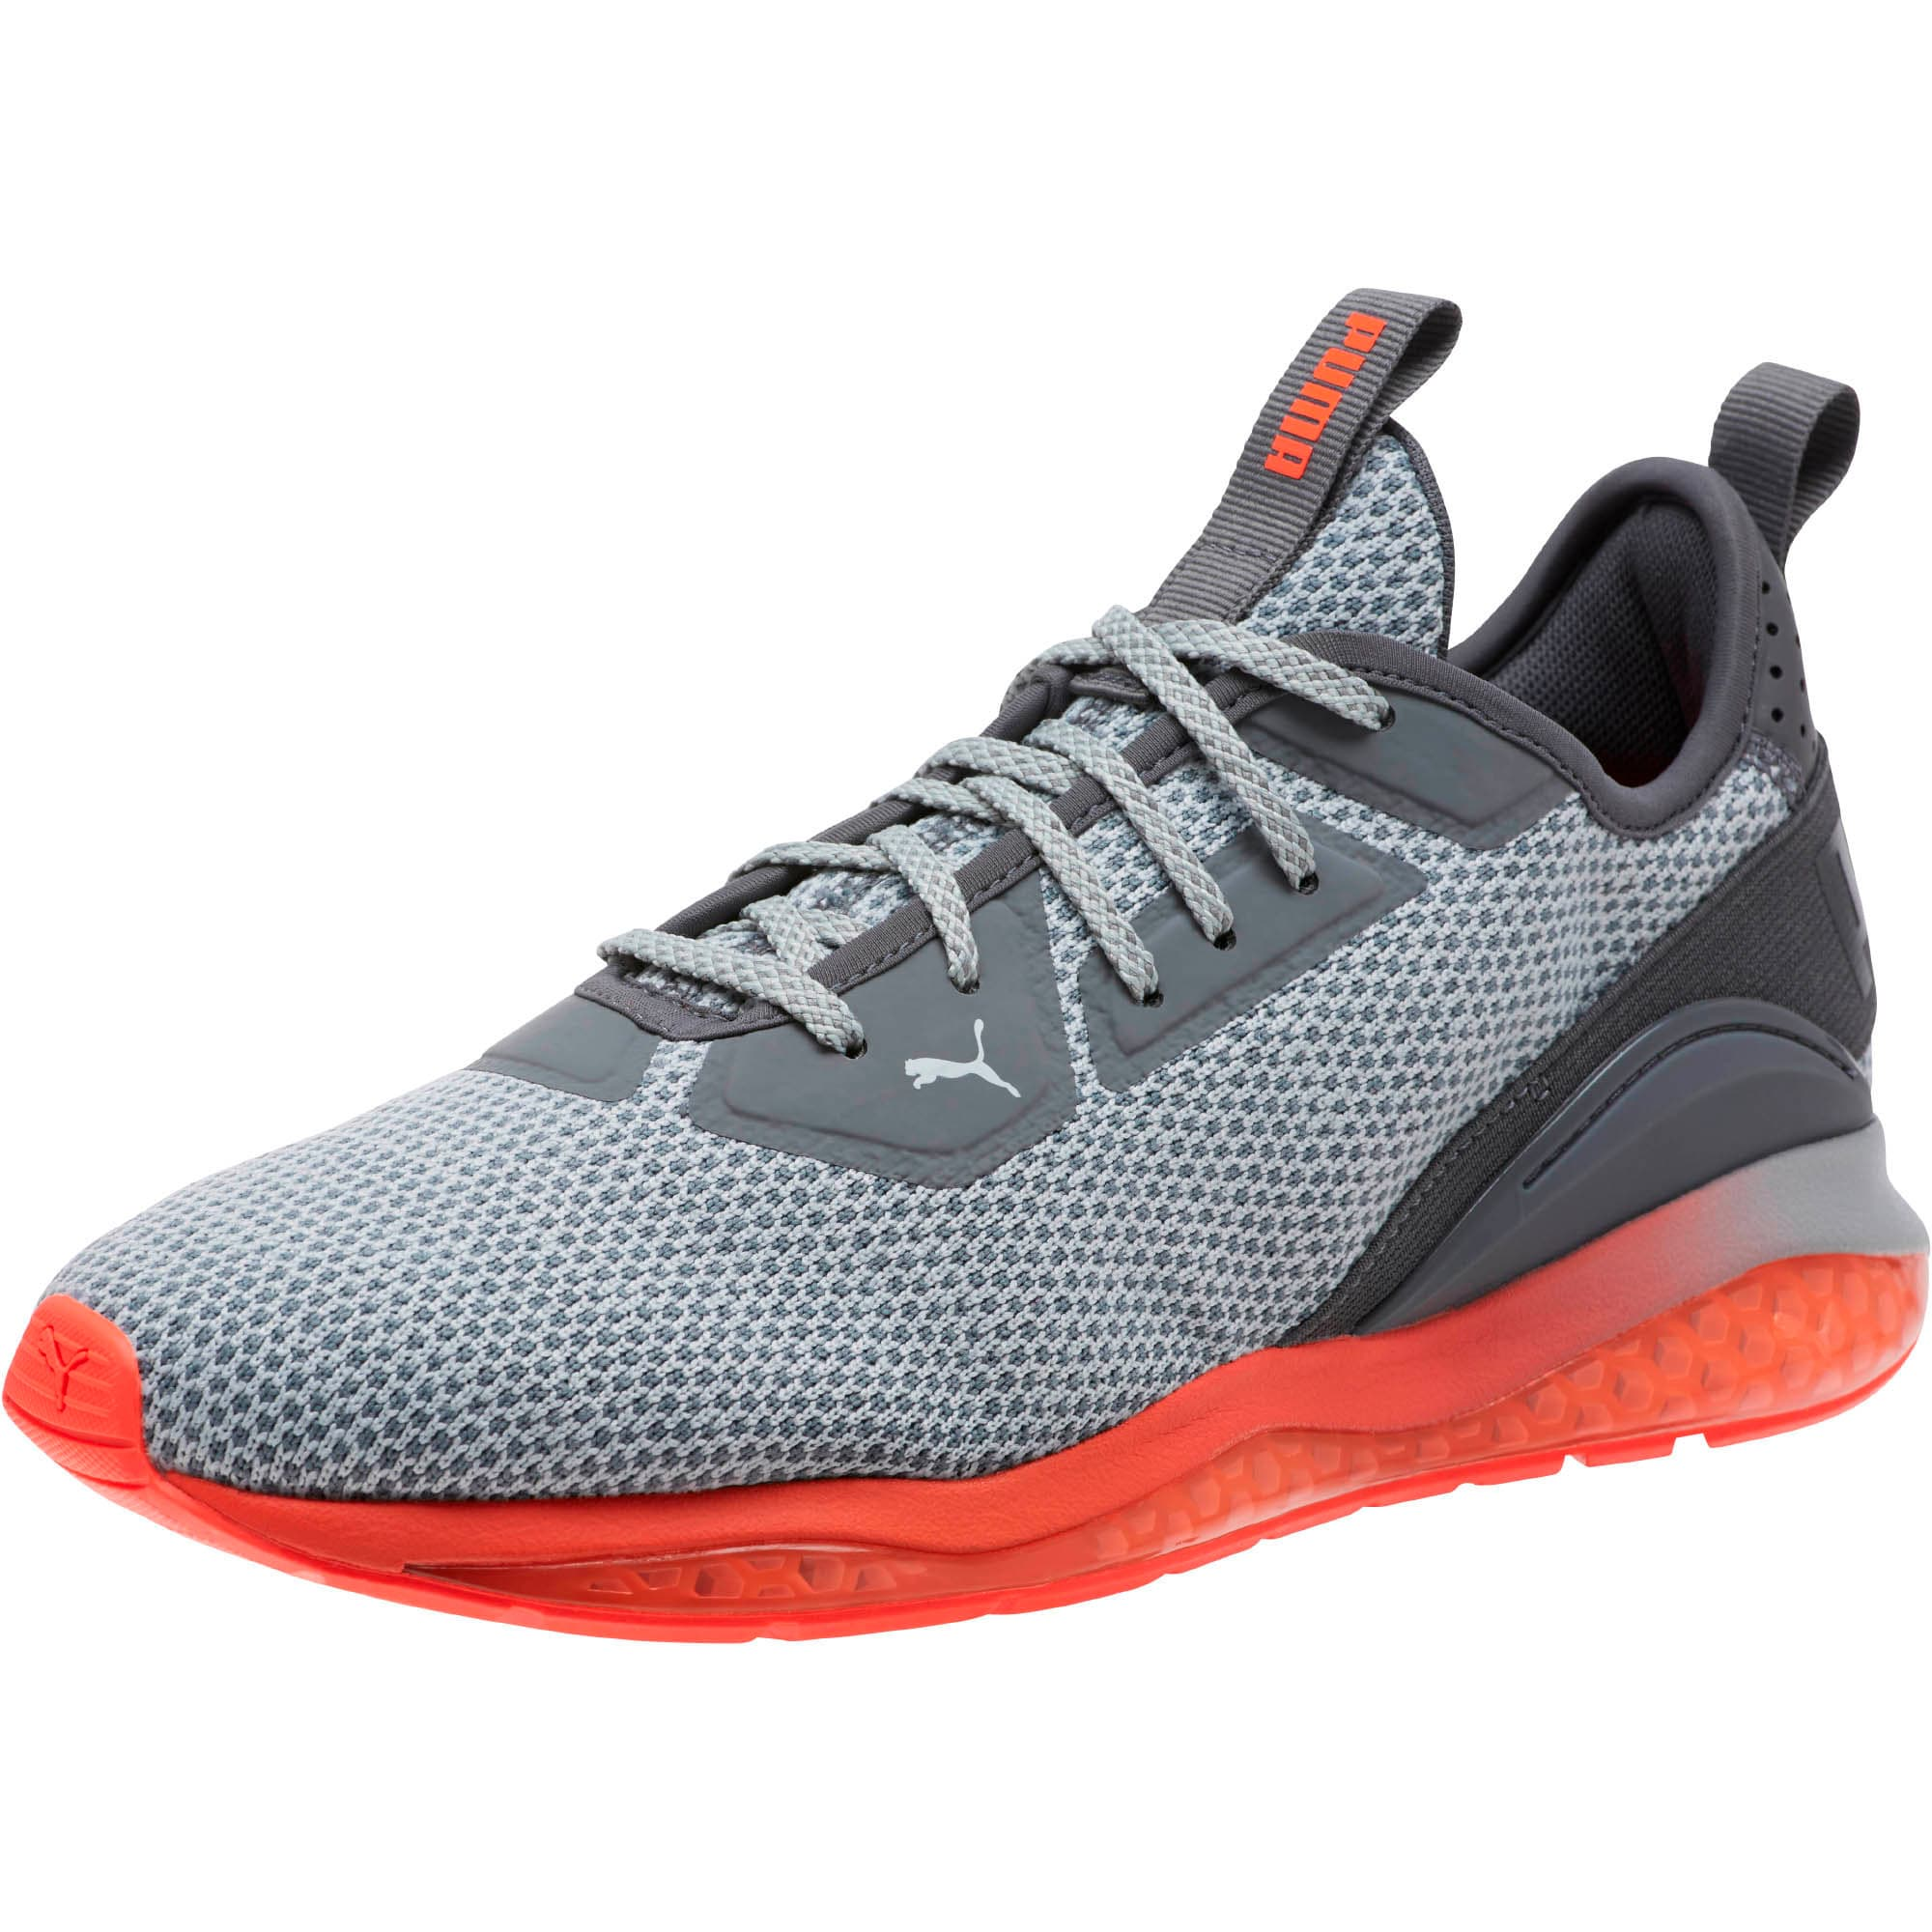 Thumbnail 1 of CELL Descend Northern Lights Sneakers, Irn Gt-Qrry-Shkg Org-Rd Blst, medium